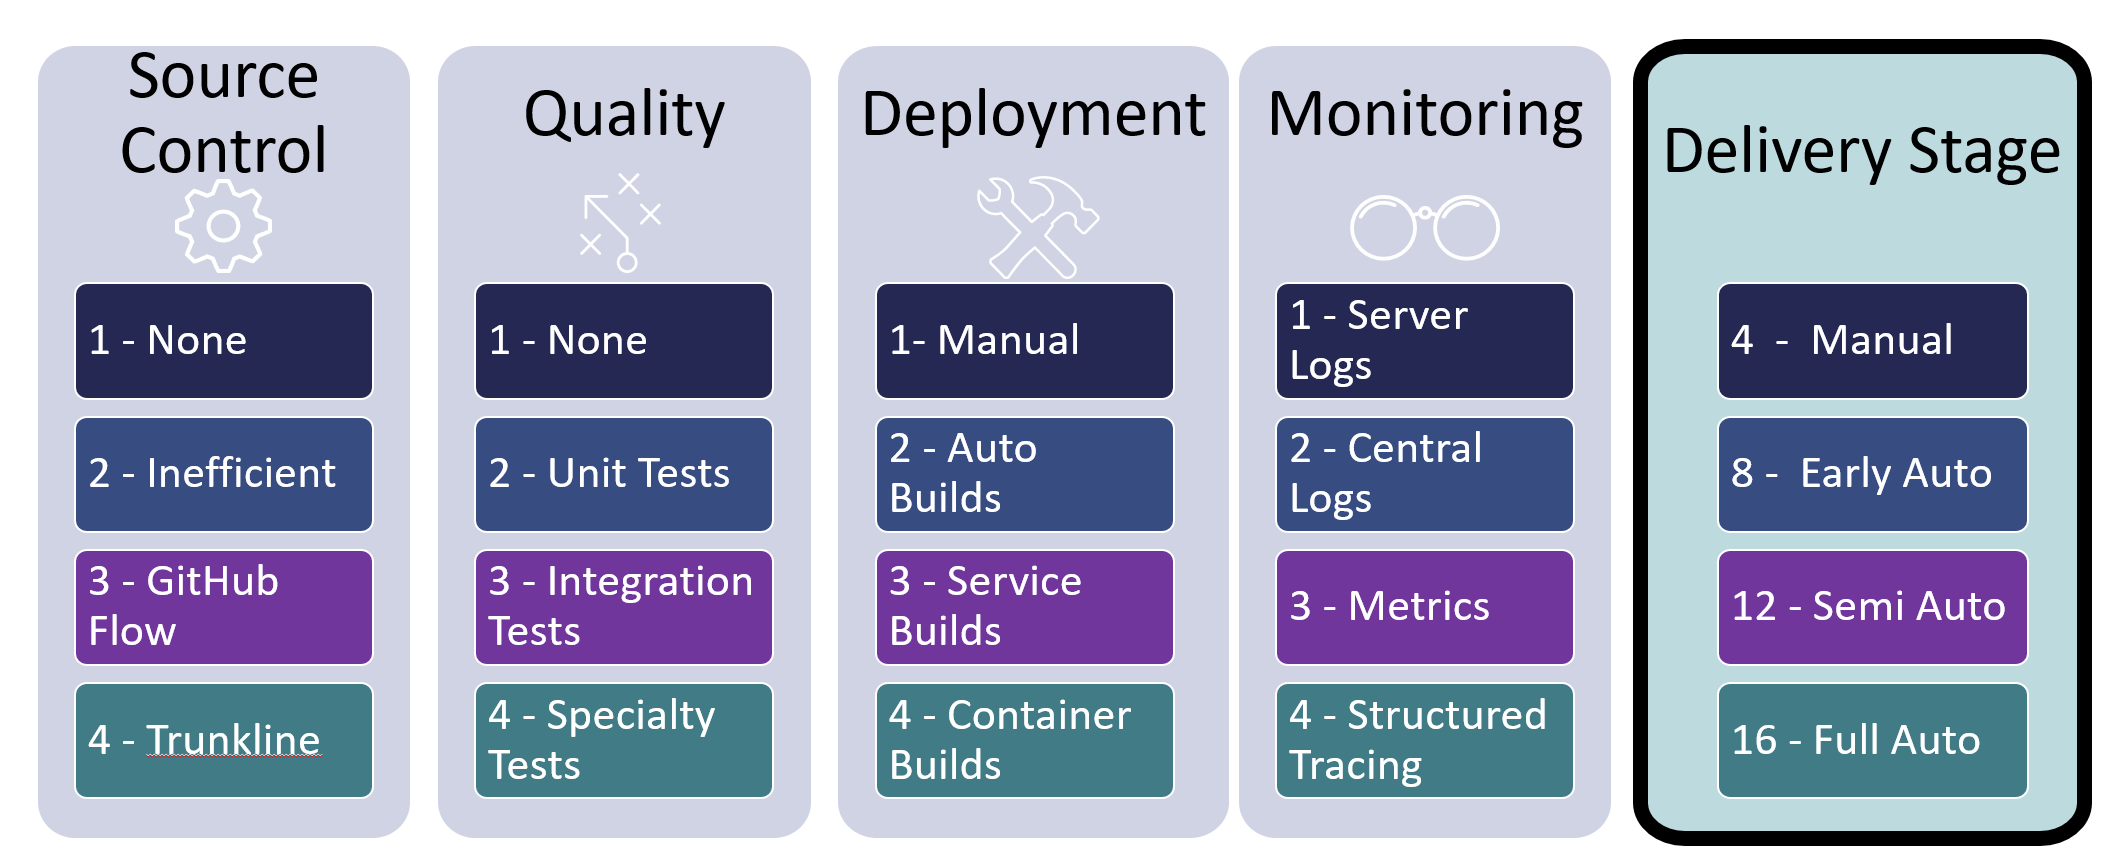 Continuous delivery stages